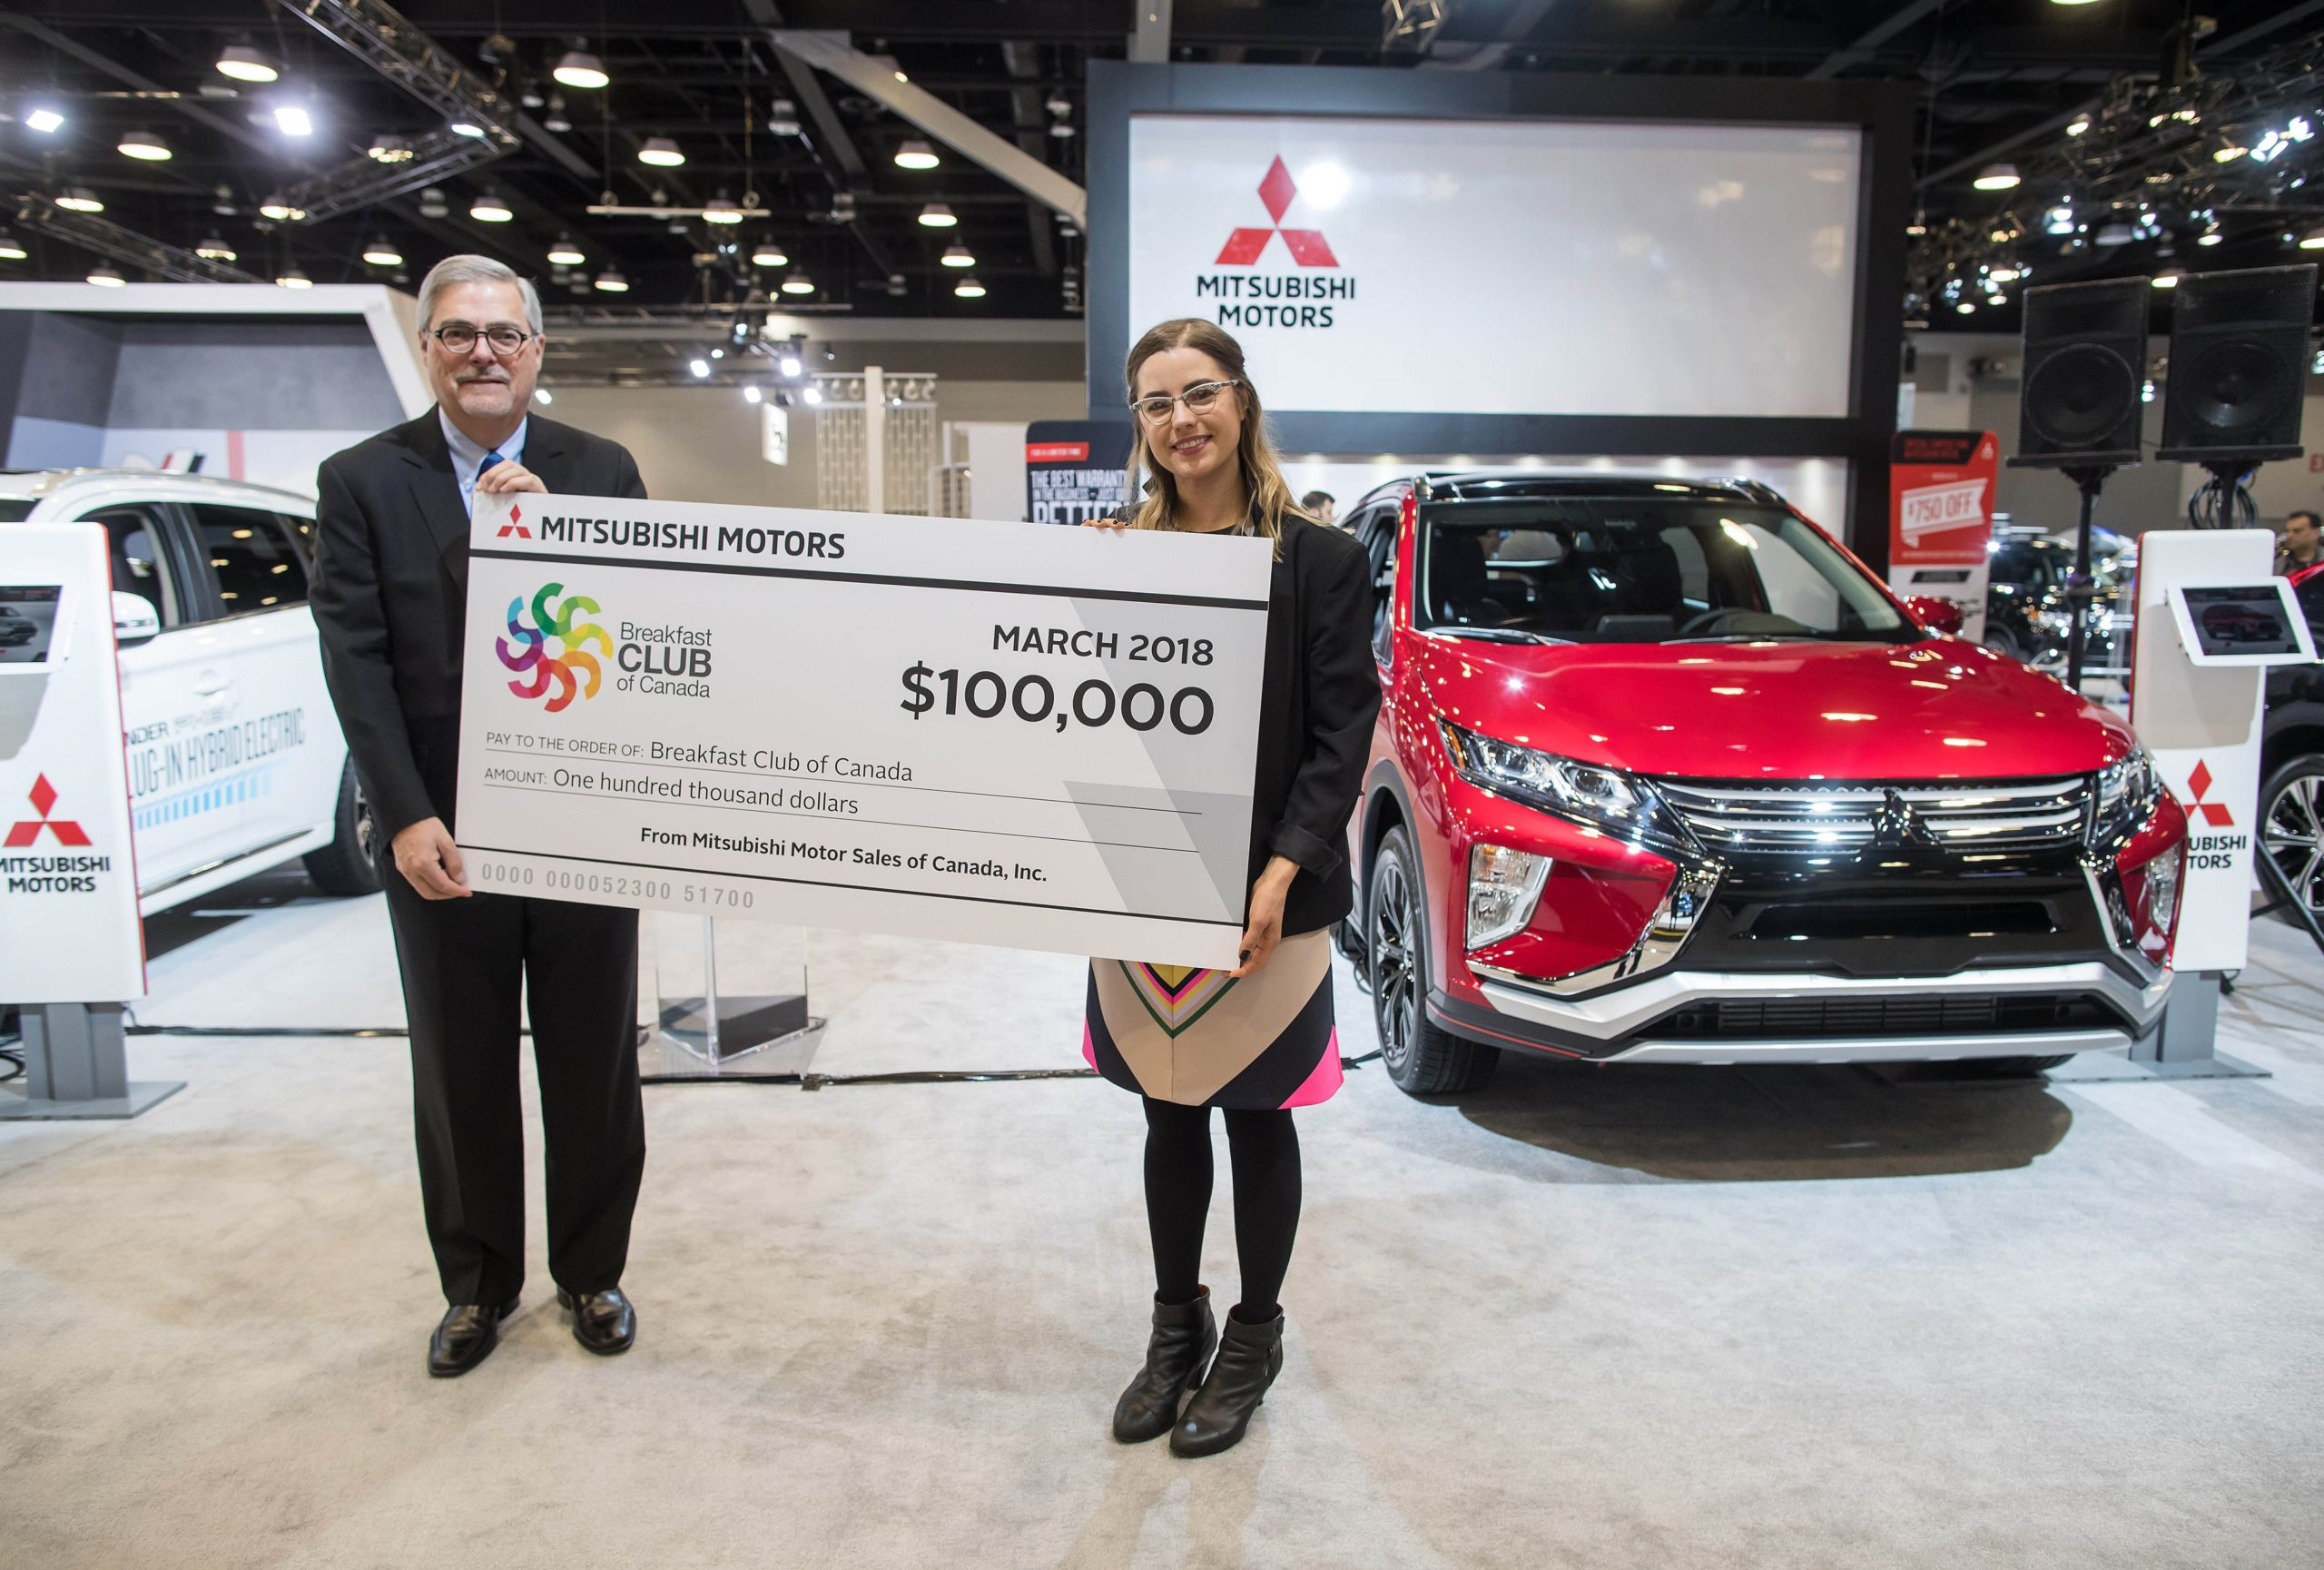 Mitsubishi Motors Helps to Feed 100,000 Kids